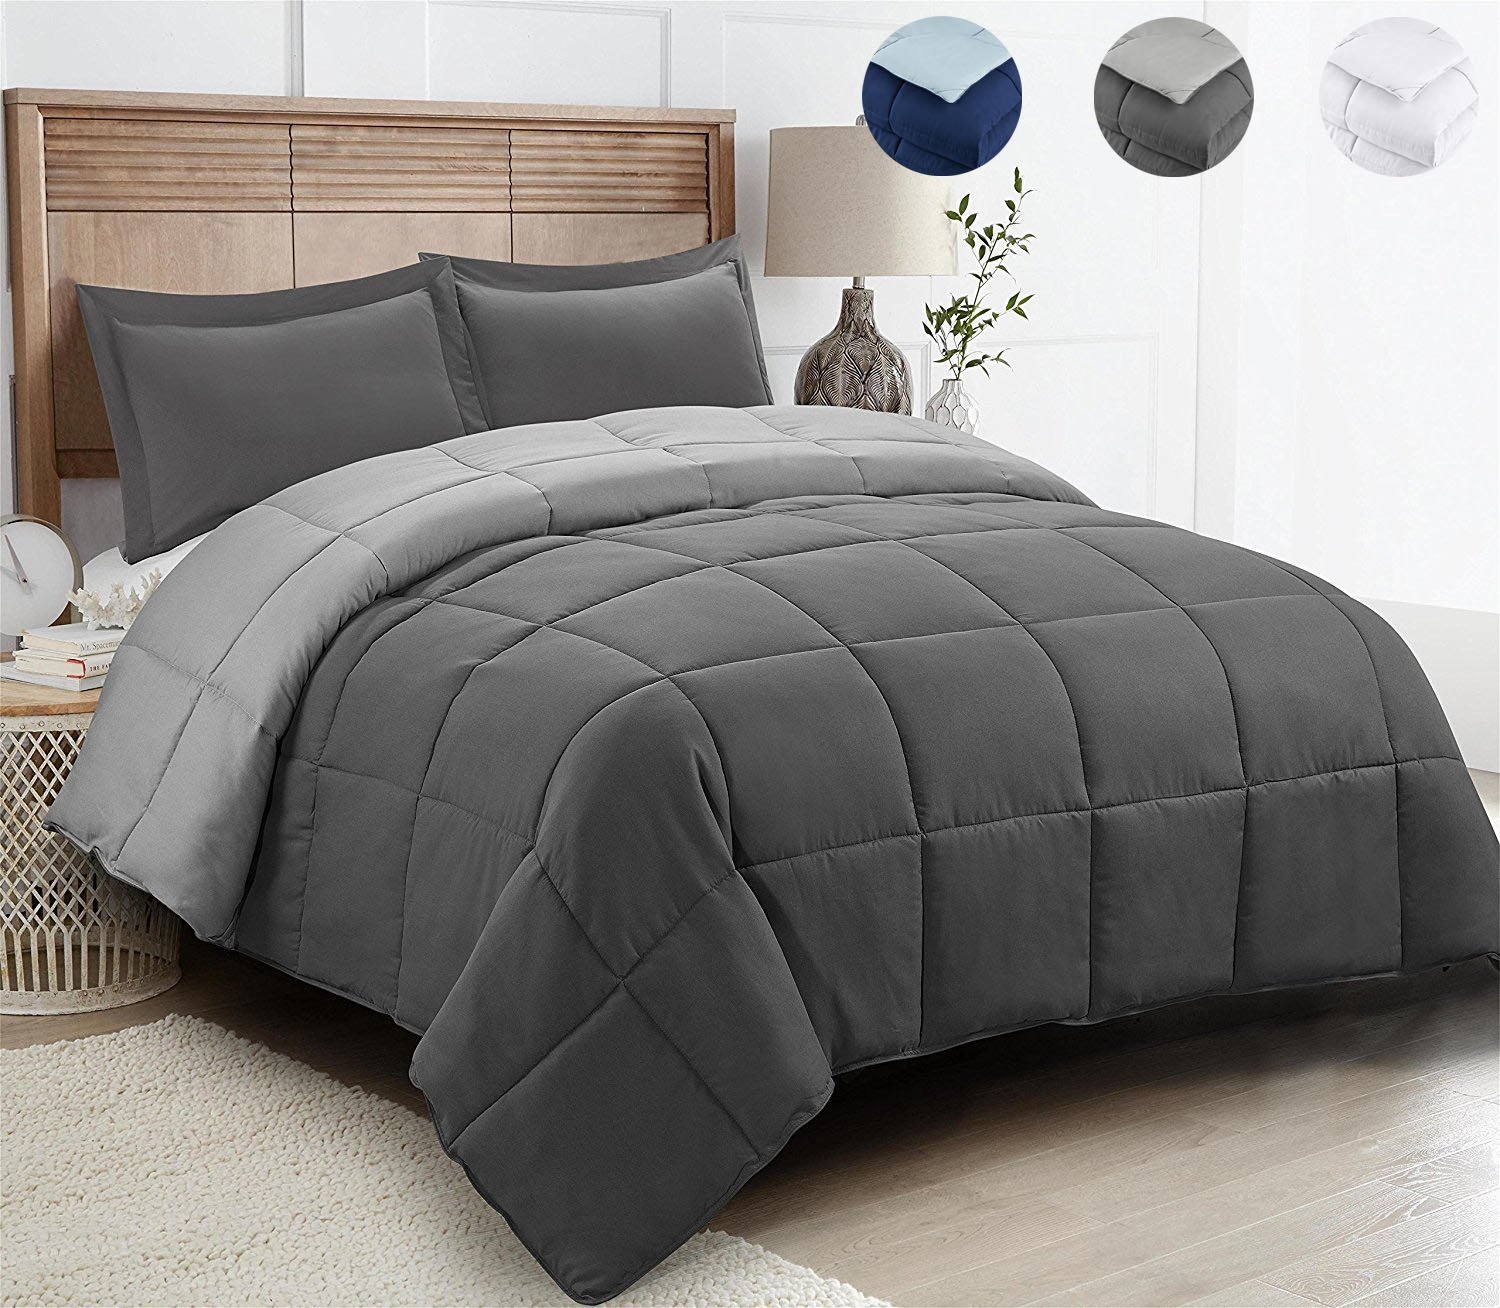 2 Piece All Season Down Alternative Comforter Set,Duvet Insert or Stand Alone with 1 Sham,Reversible Box Stitched Quilted Comforter with Corner Duvet Tabs,Soft Plush(Twin&Twin XL,Dark/Light Gray)